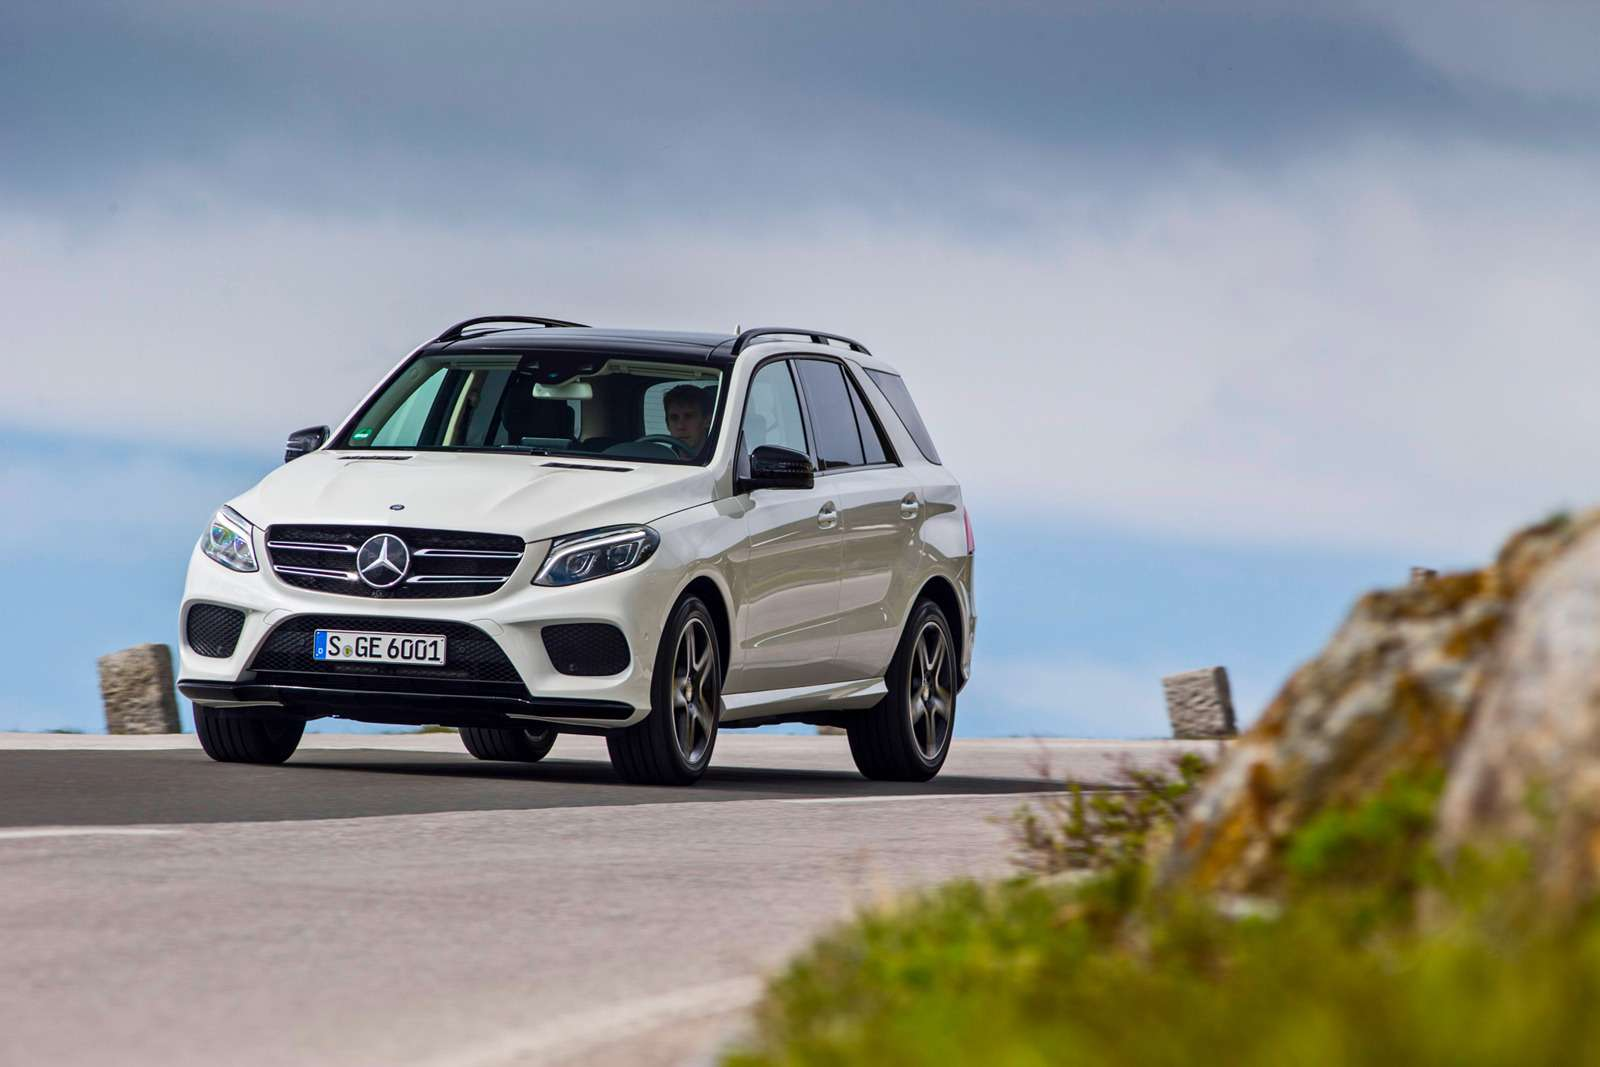 2016-Mercedes-Benz-GLE400-4Matic-front-three-quarters-02